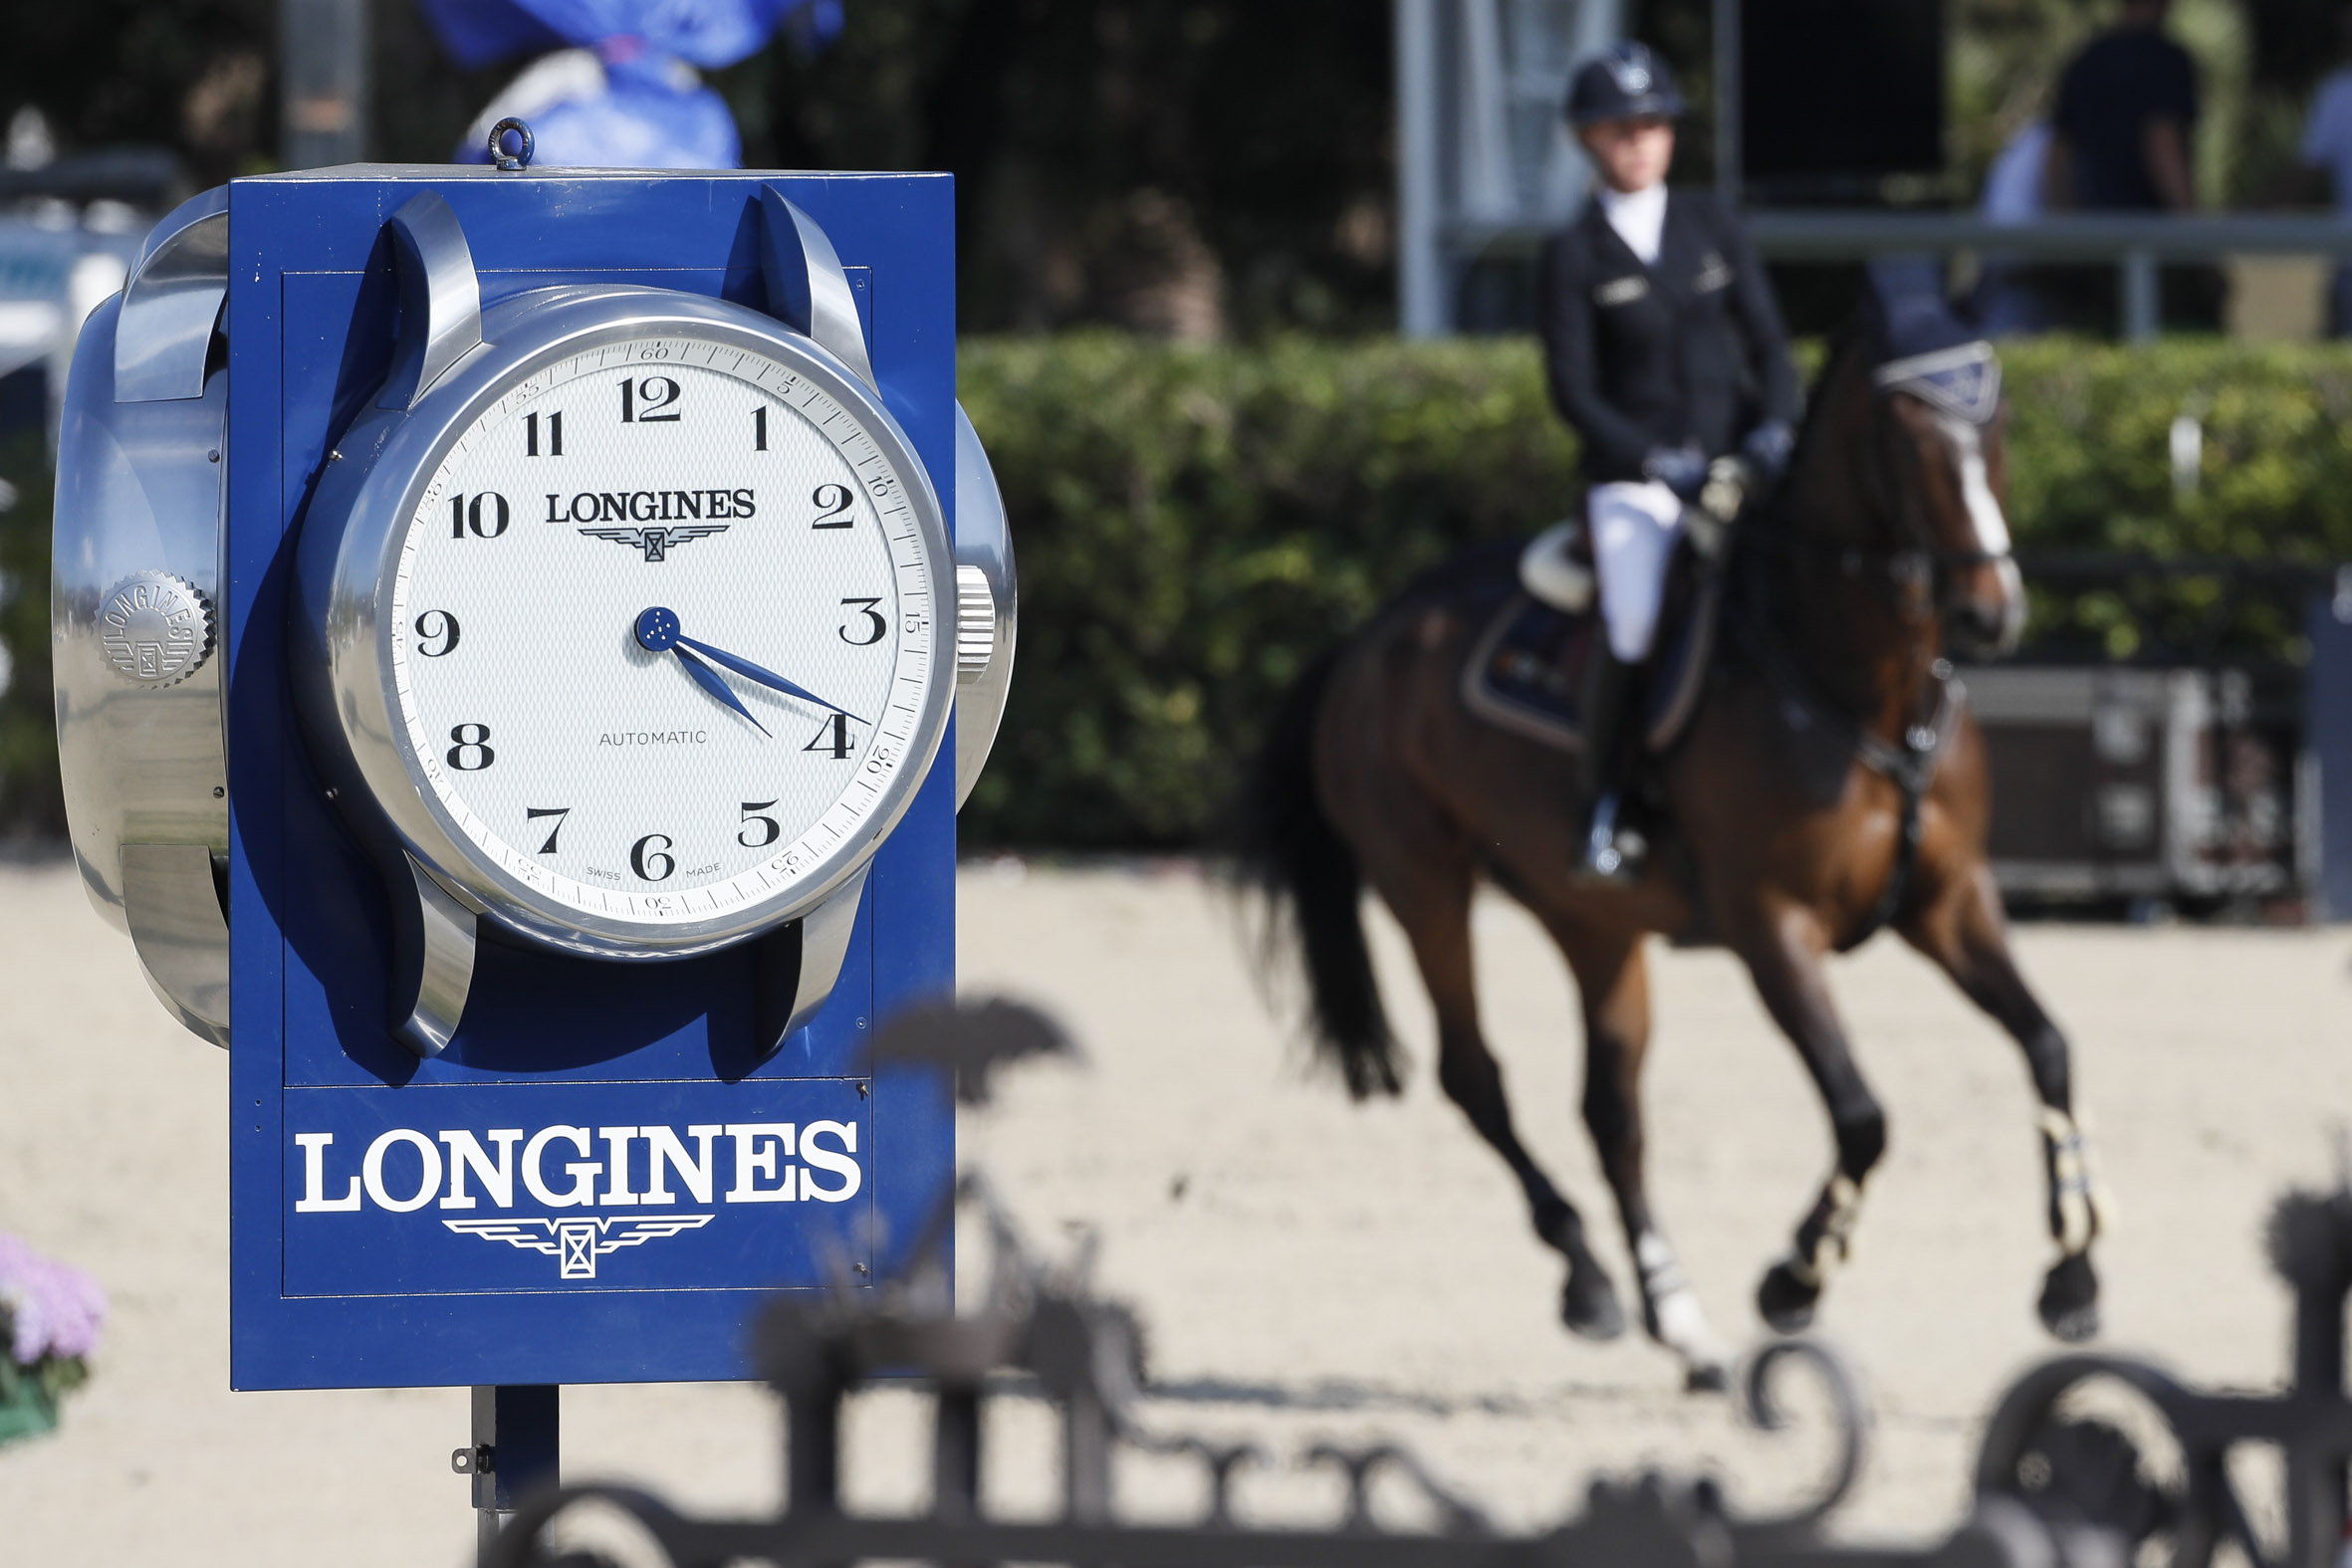 Only 30 days left for the equestrian event of the year